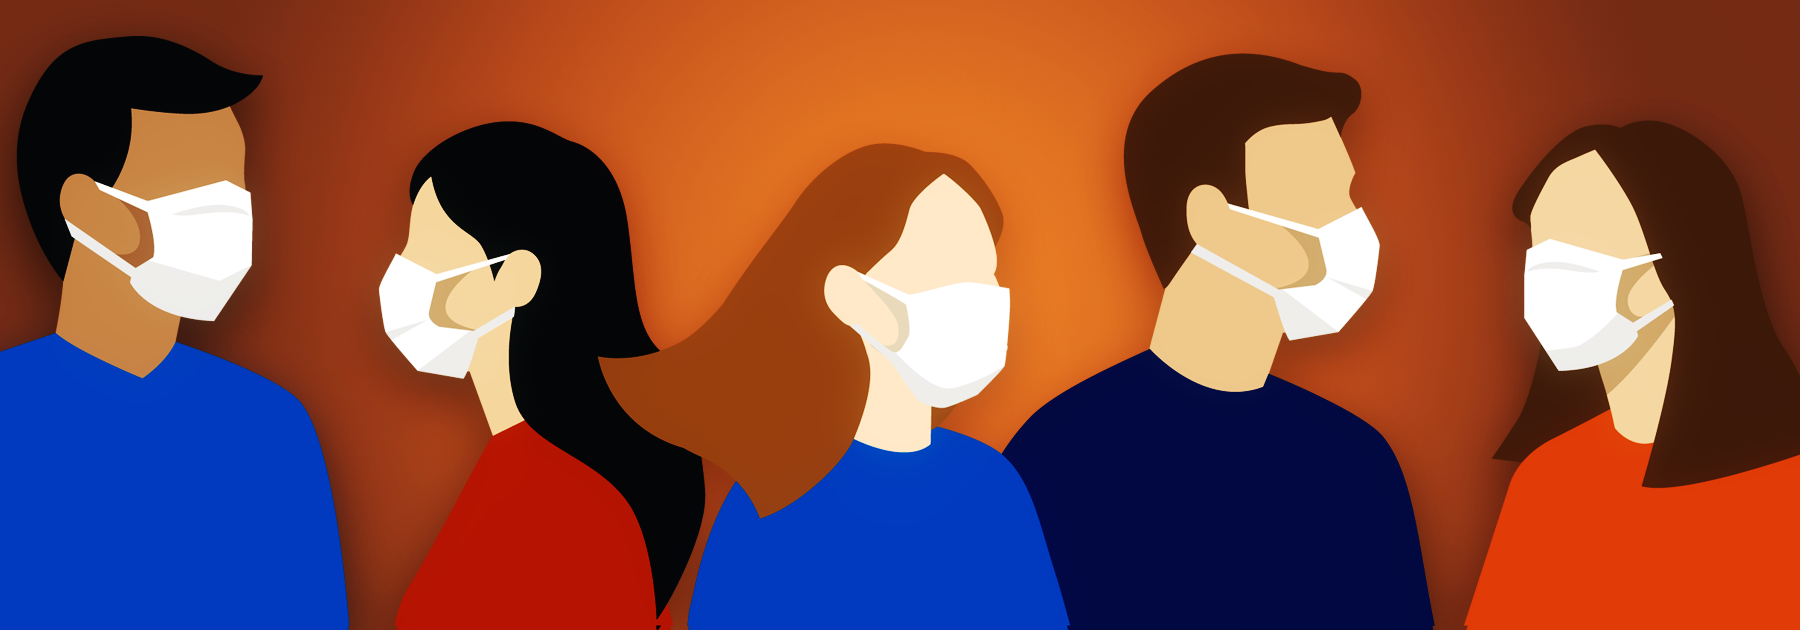 Stylized illustration of people wearing COVID masks